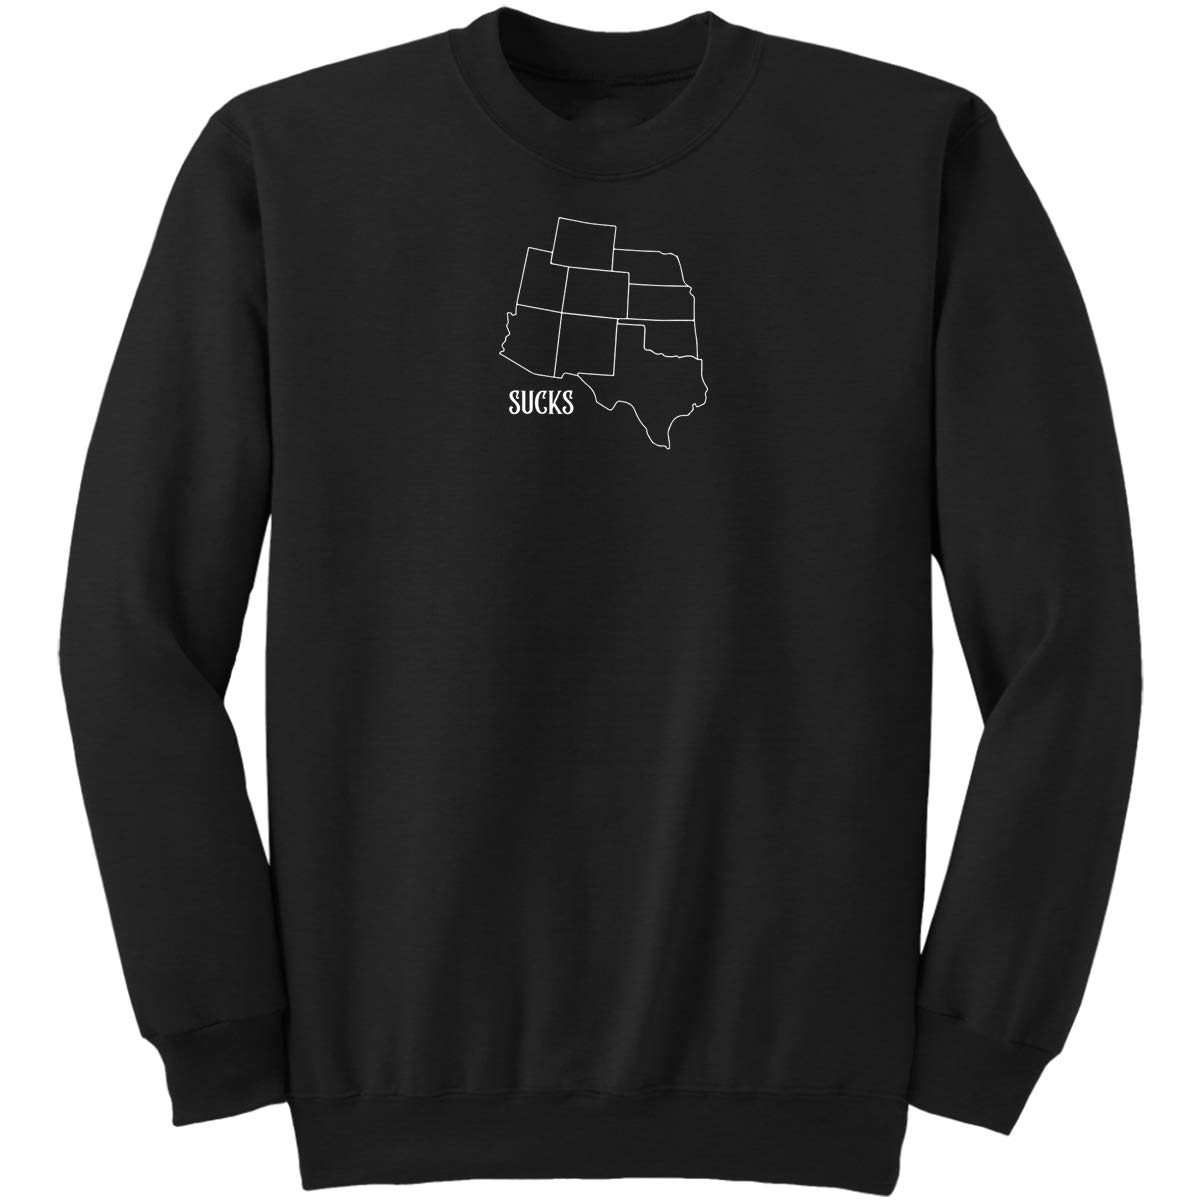 Proud Sta Long Sleeve T-Shirt Colorado Sucks Funny Retro Style Gag Gifts Idea